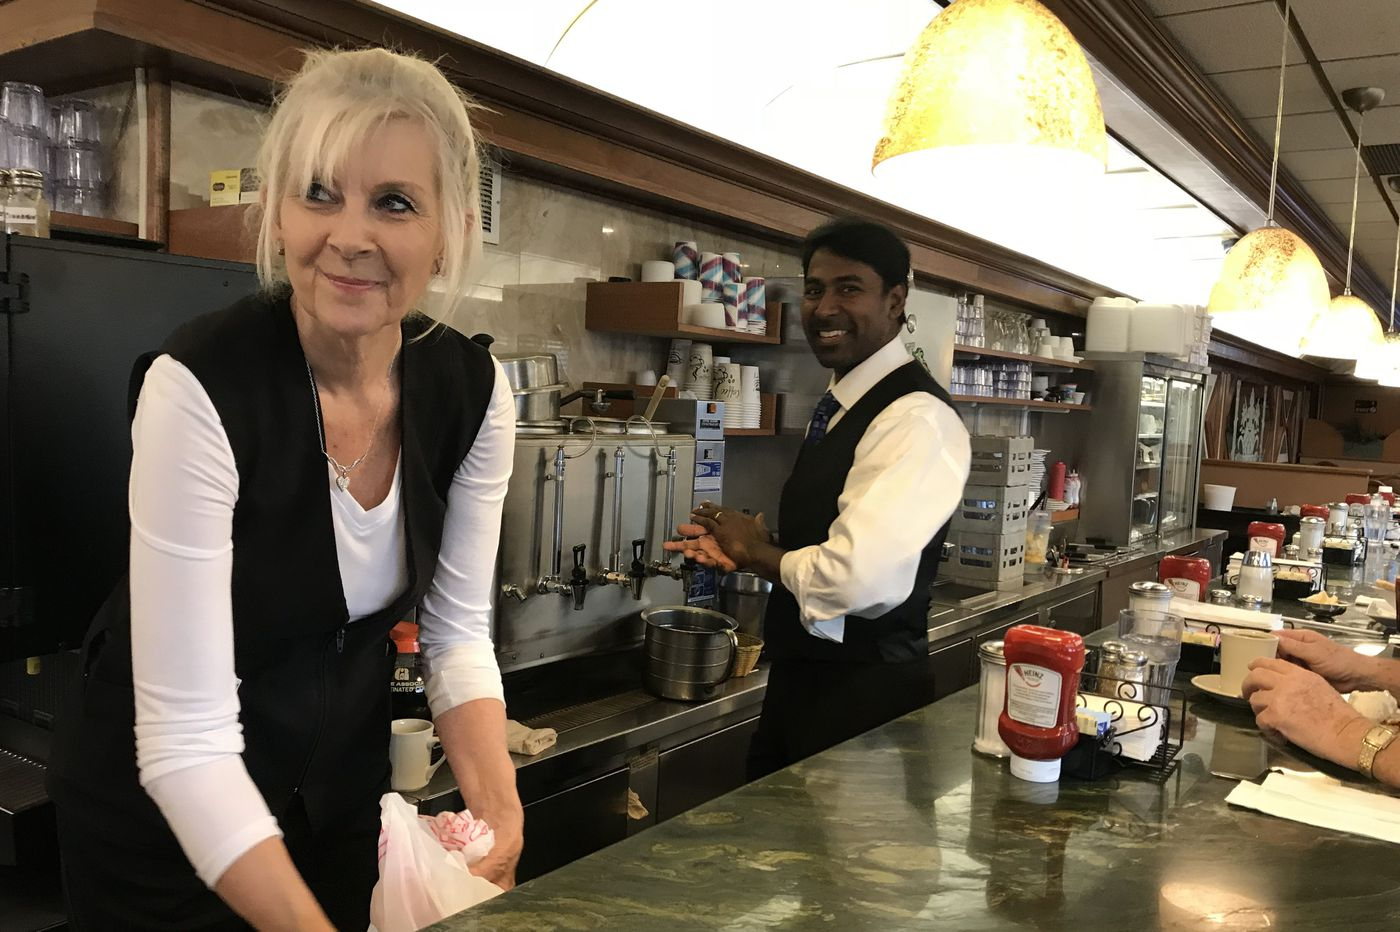 Diners don't lie: At bellwether Bucks eateries, the talk is Trump – and it's happy chatter ahead of midterm elections | Maria Panaritis